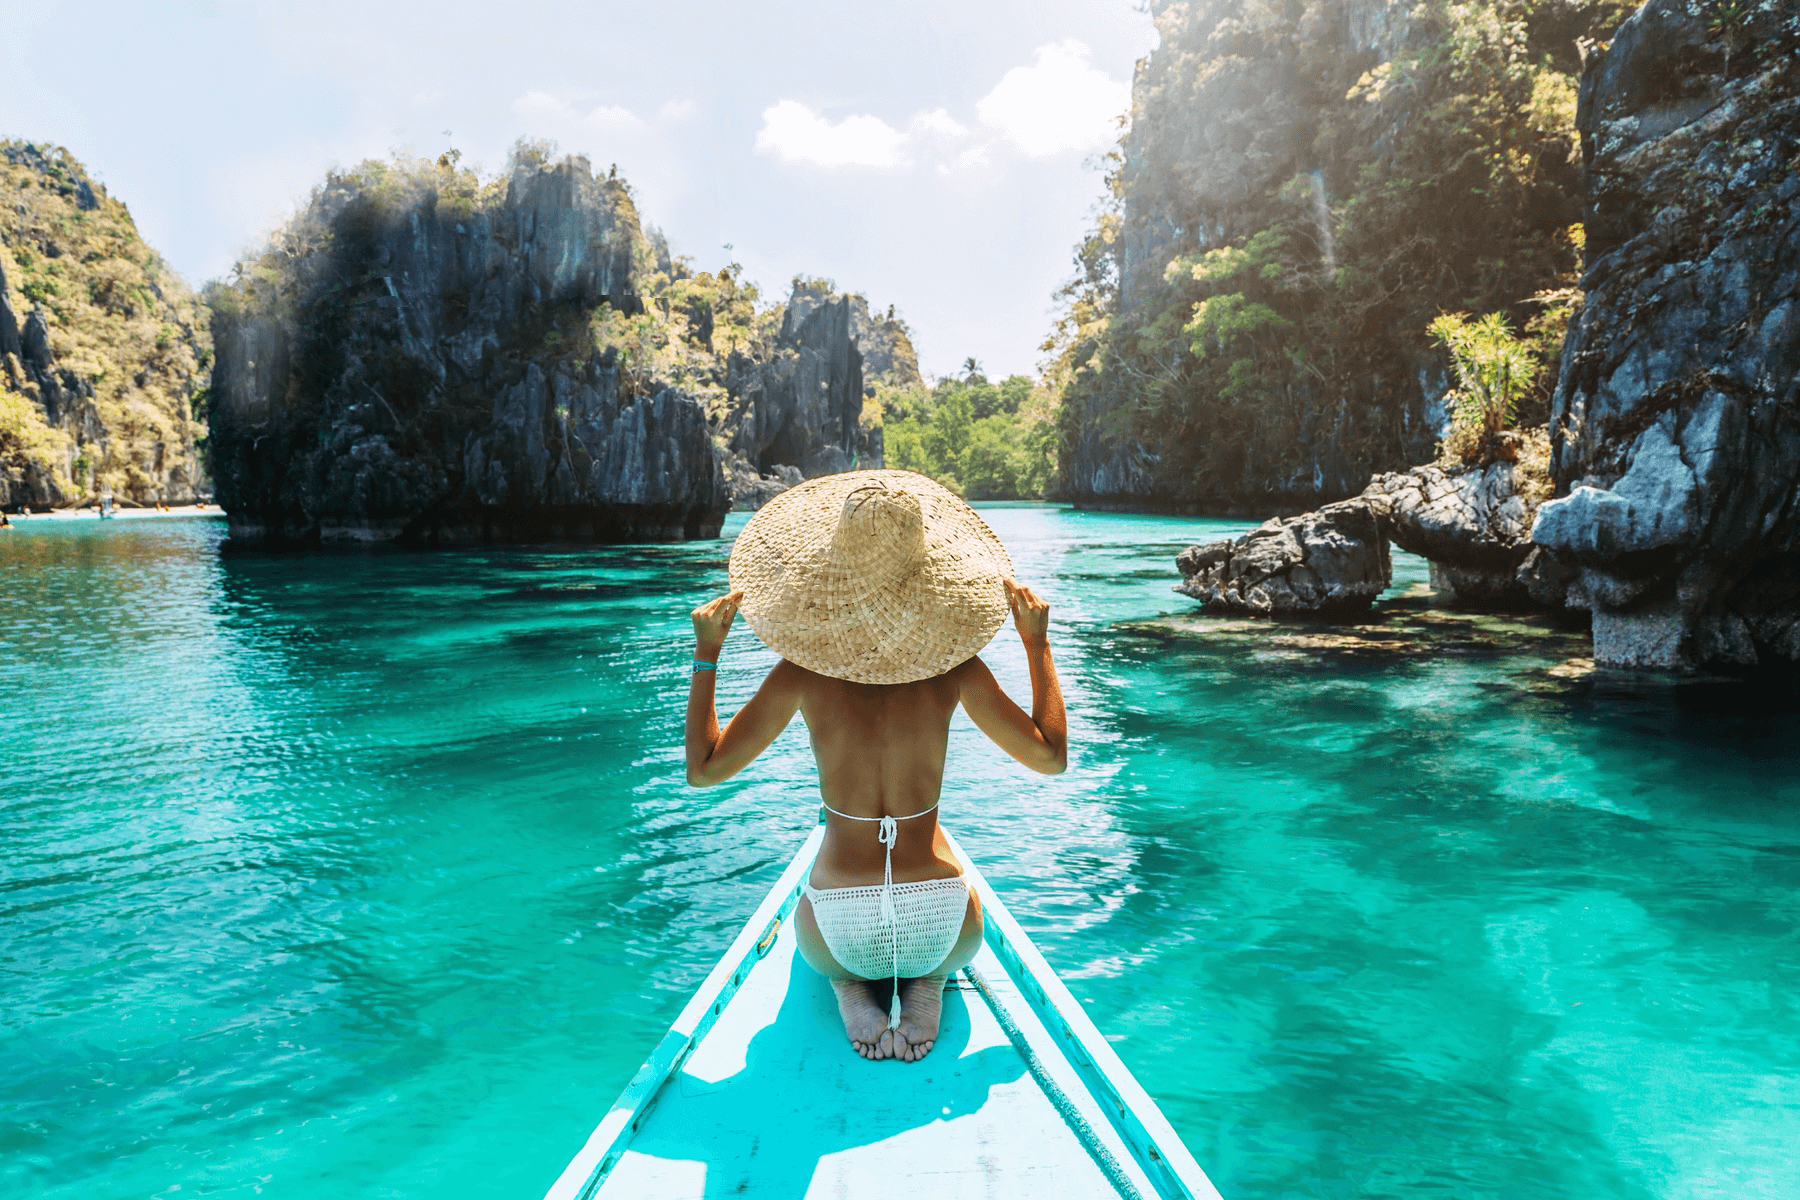 Win a 13 day adventure to Thailand worth over £1,500